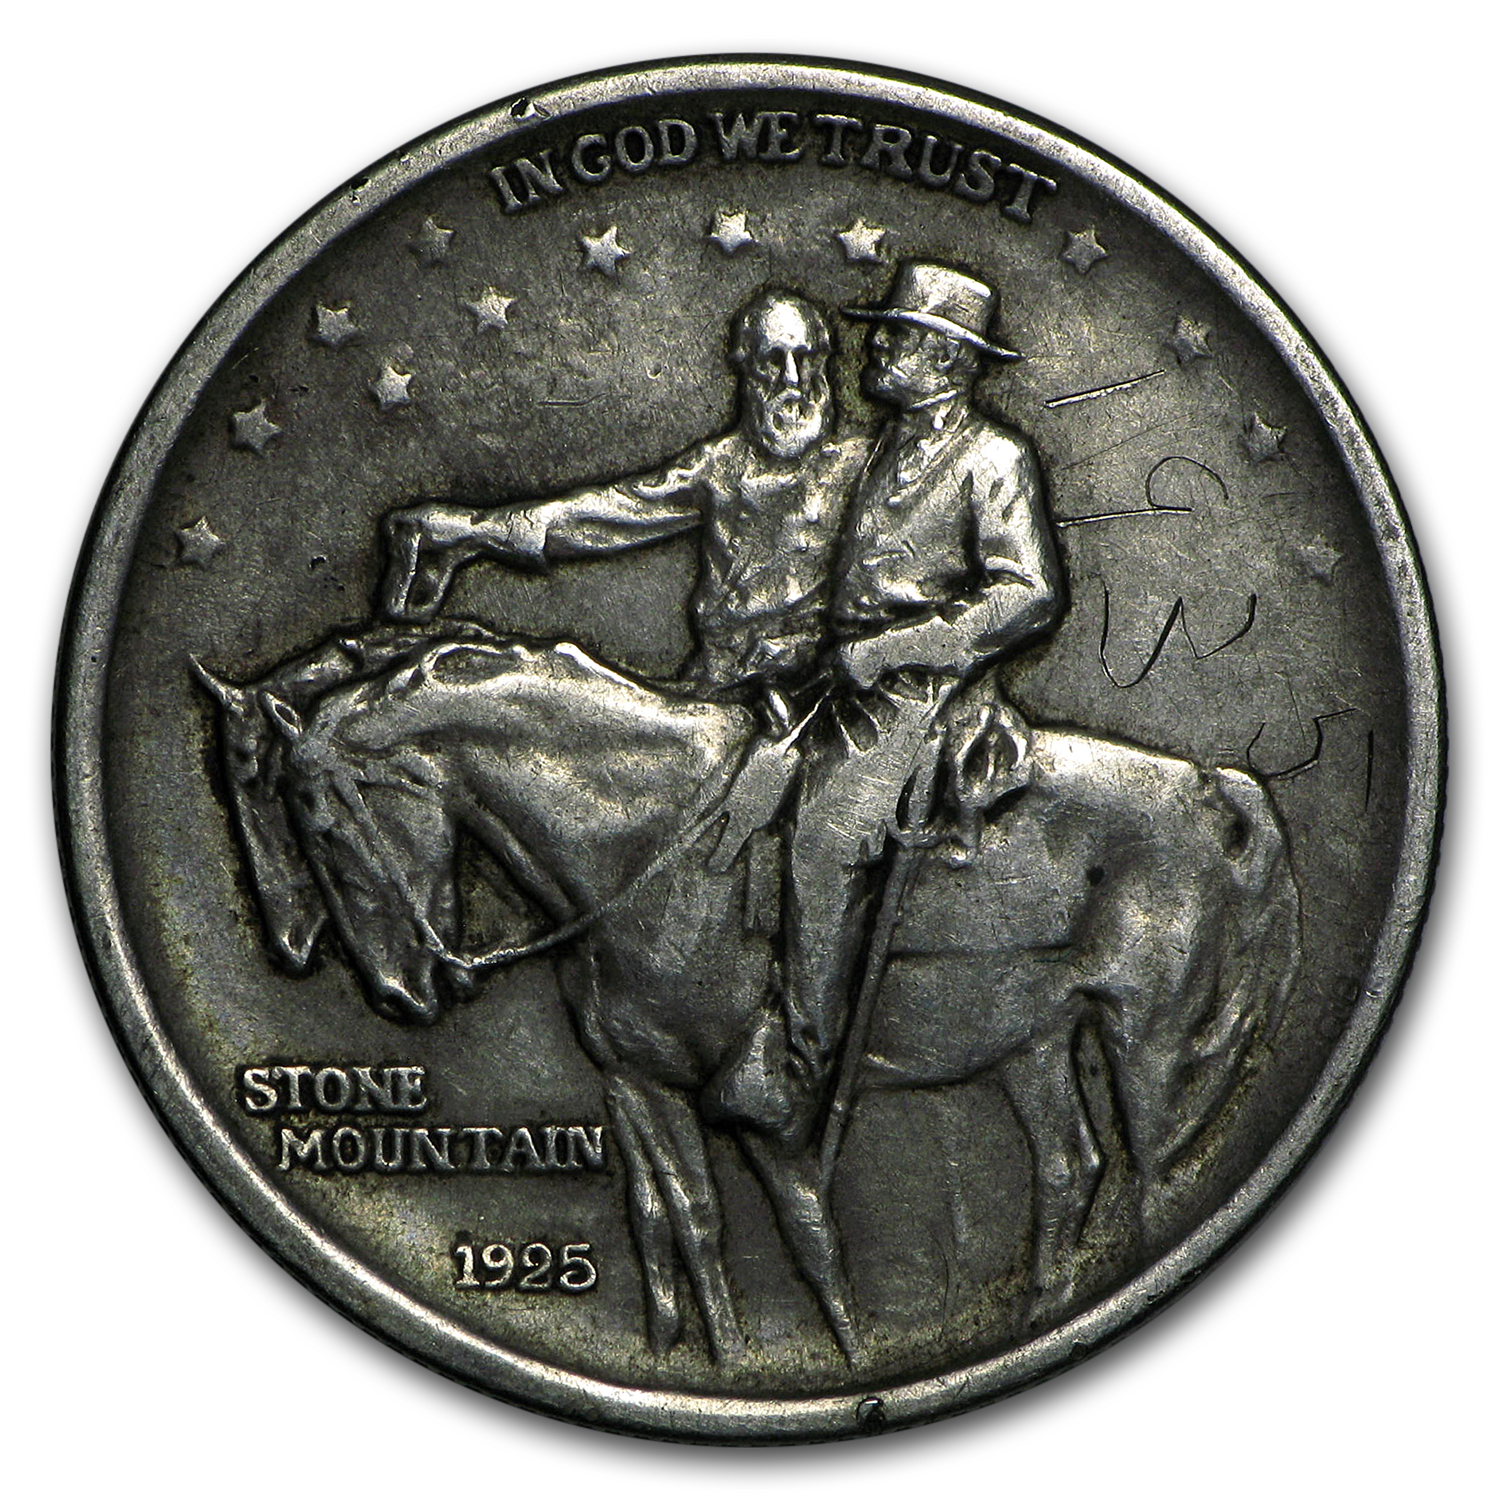 1925 Stone Mountain Half Dollar - Low Grade or Cleaned